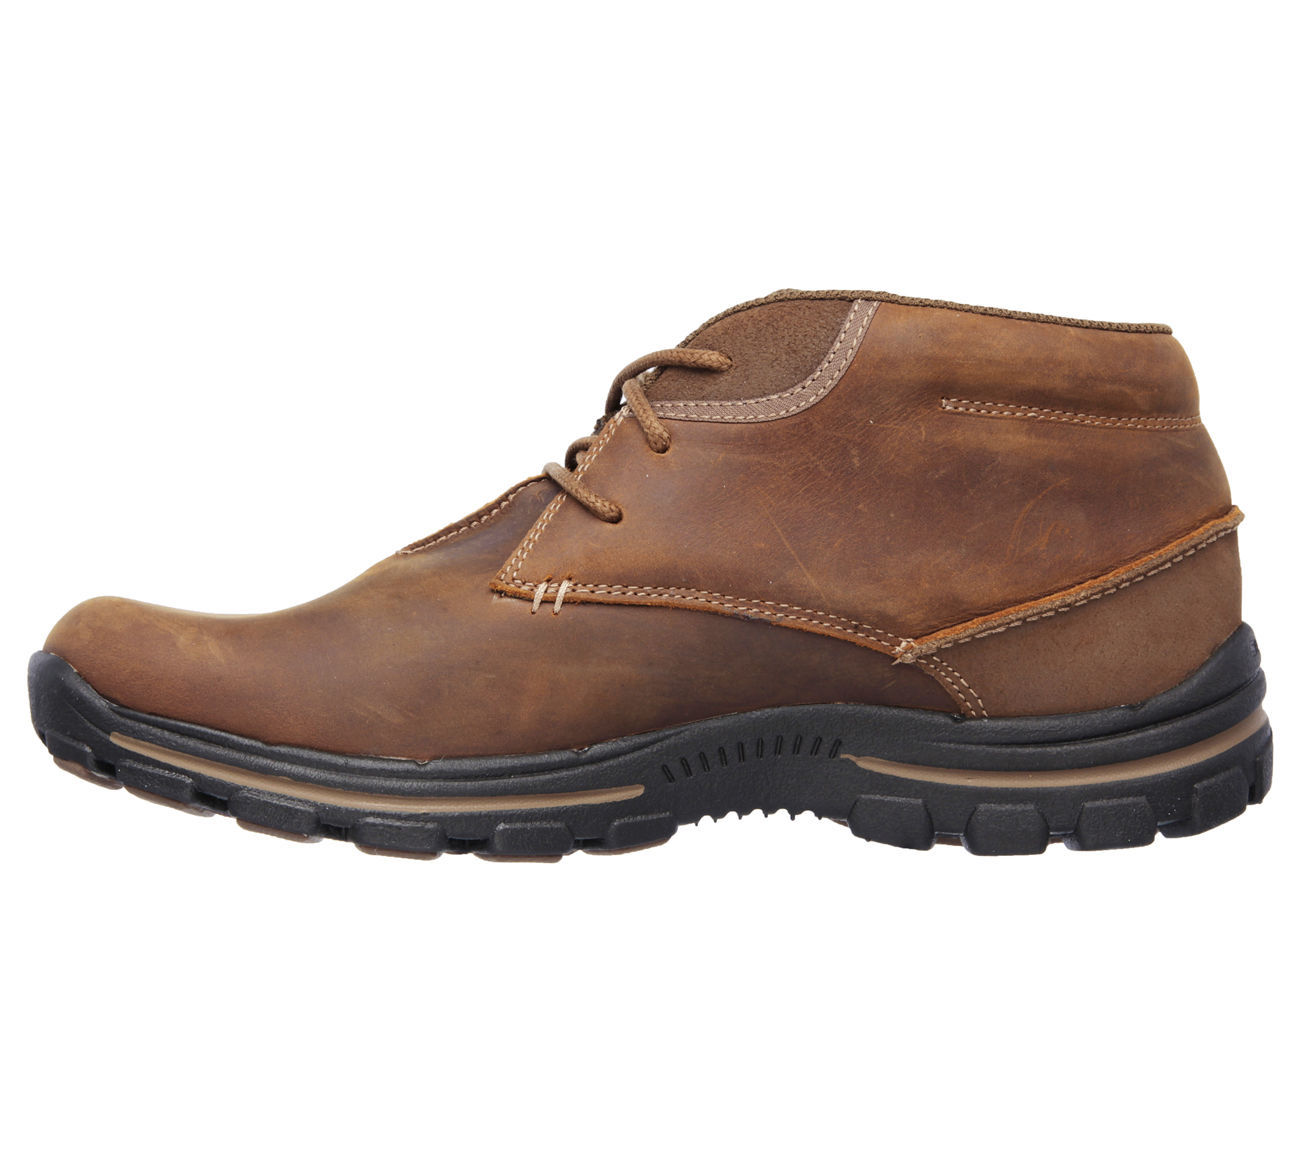 Men's SKECHERS Relaxed Fit Braver Horatio and 50 similar items